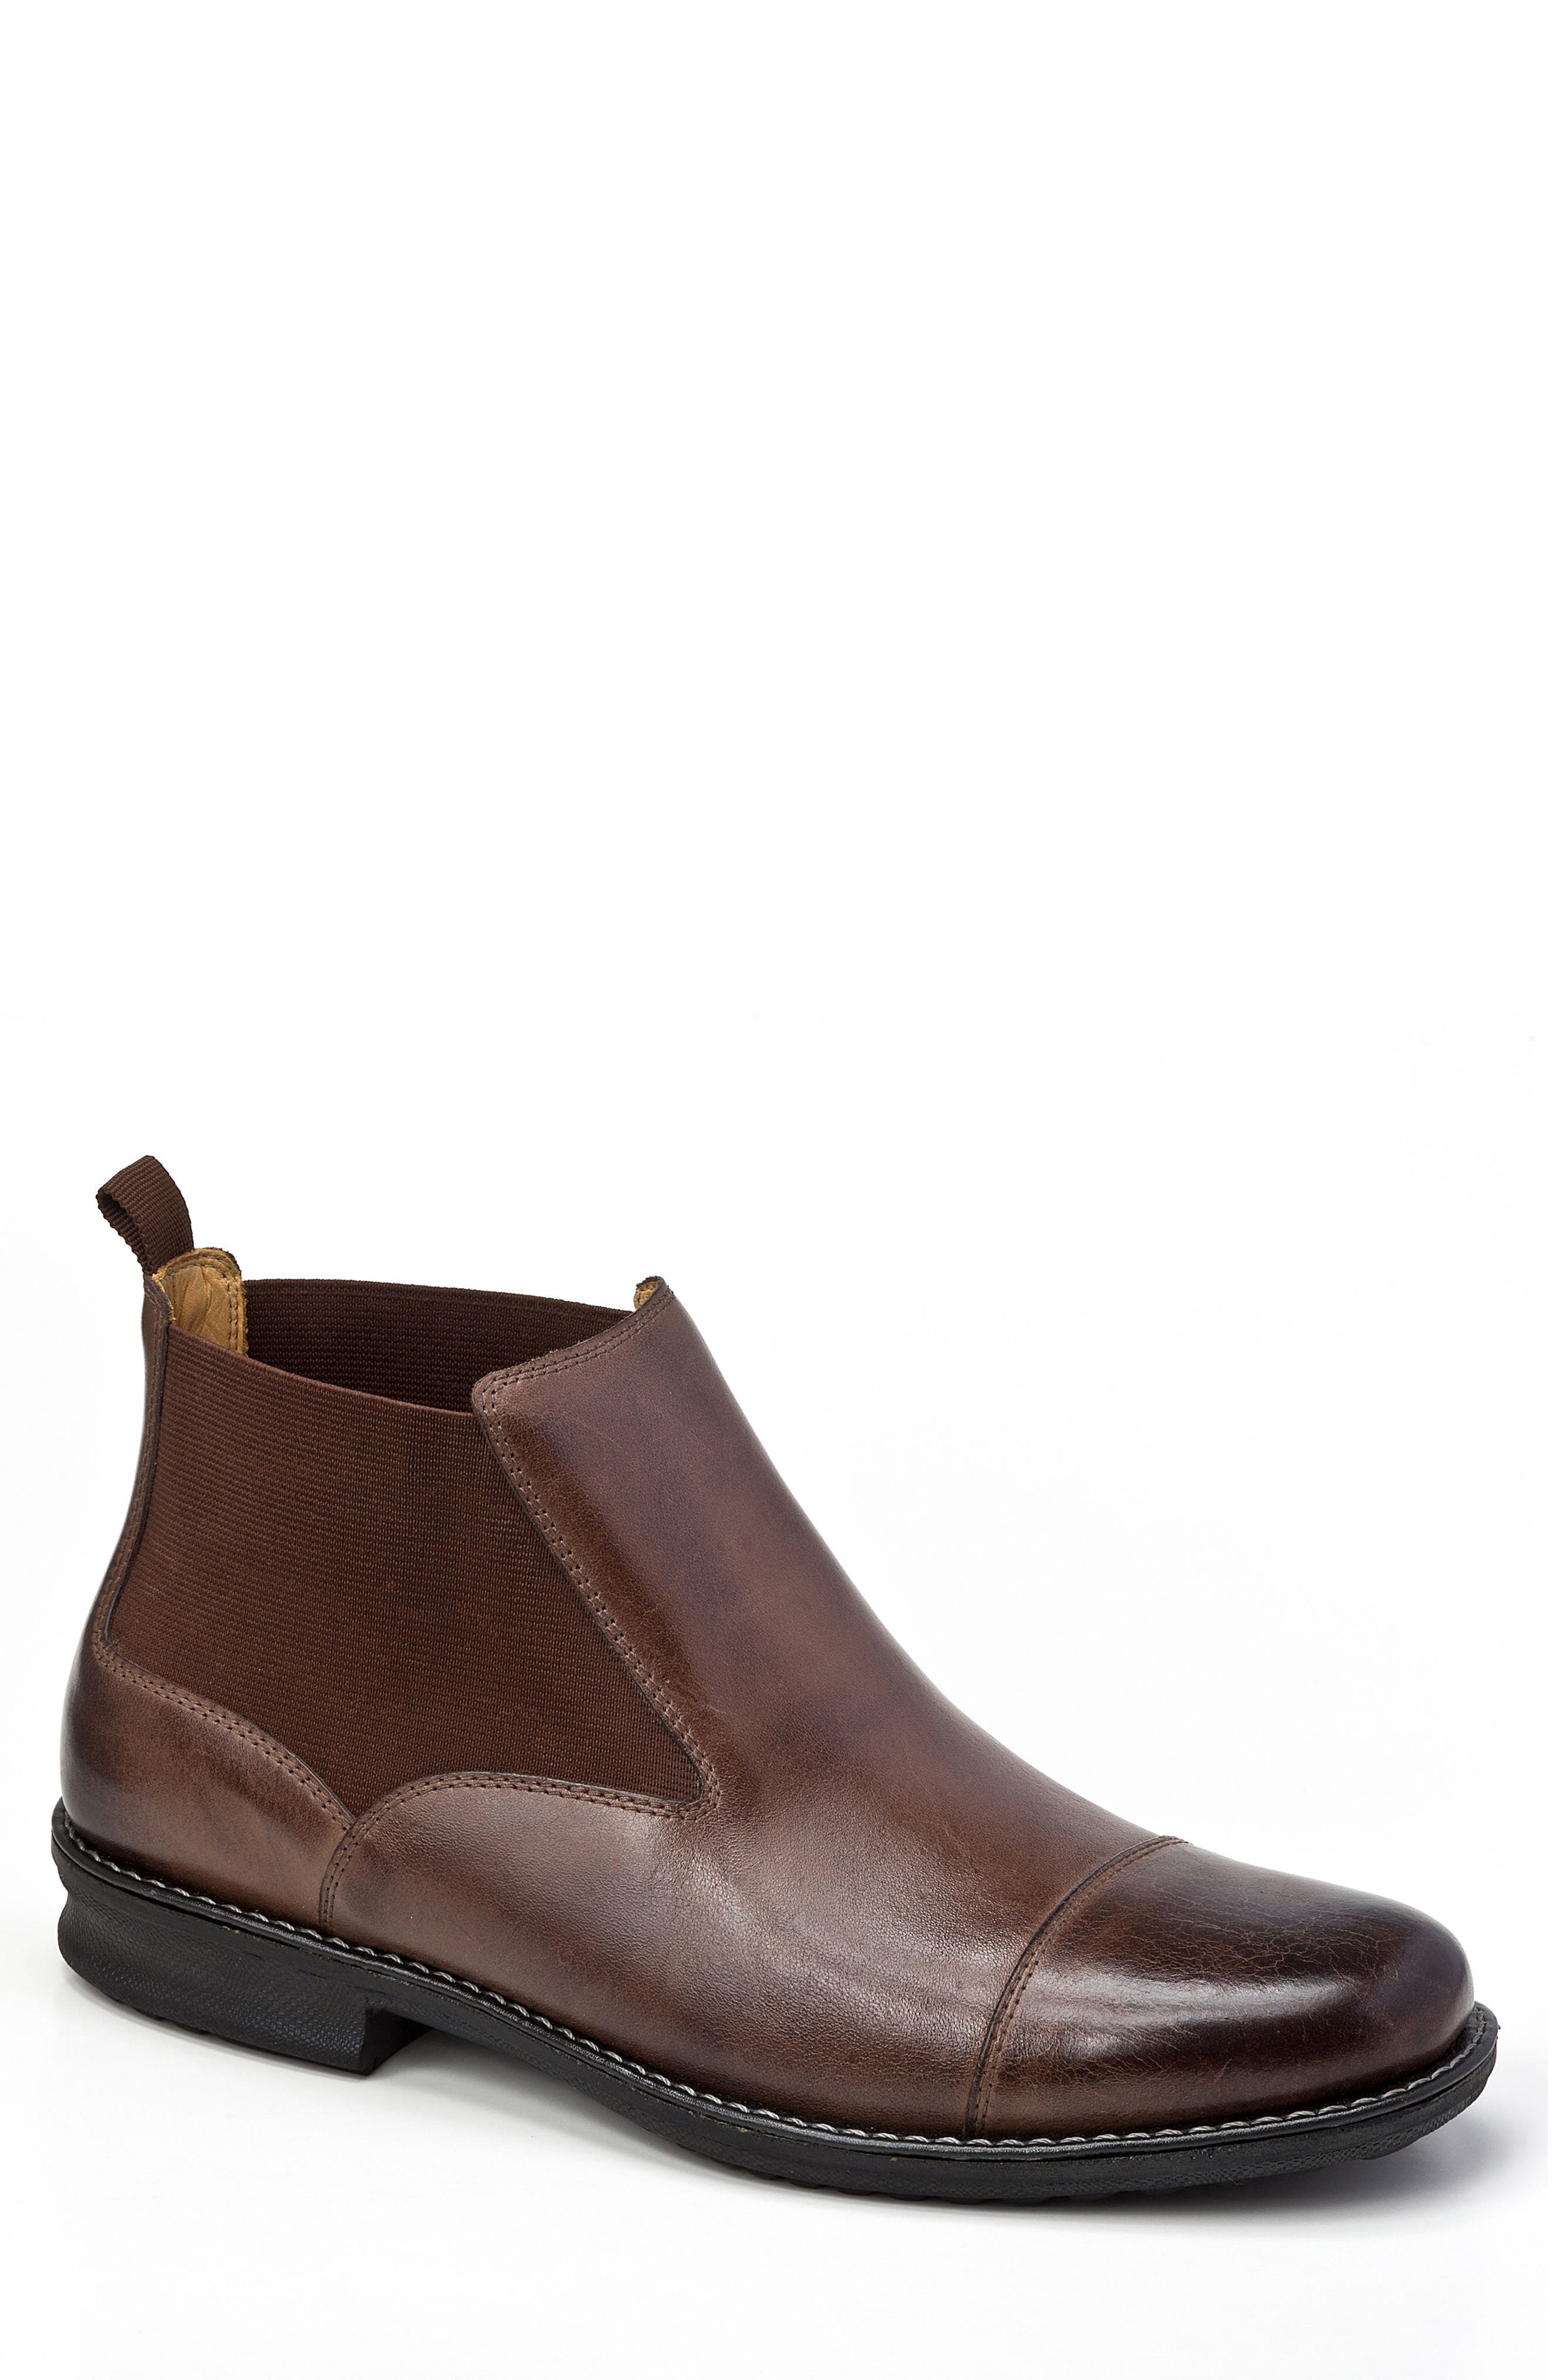 Alternate Image 1 Selected - Sandro Moscoloni Norbert Chelsea Boot (Men)